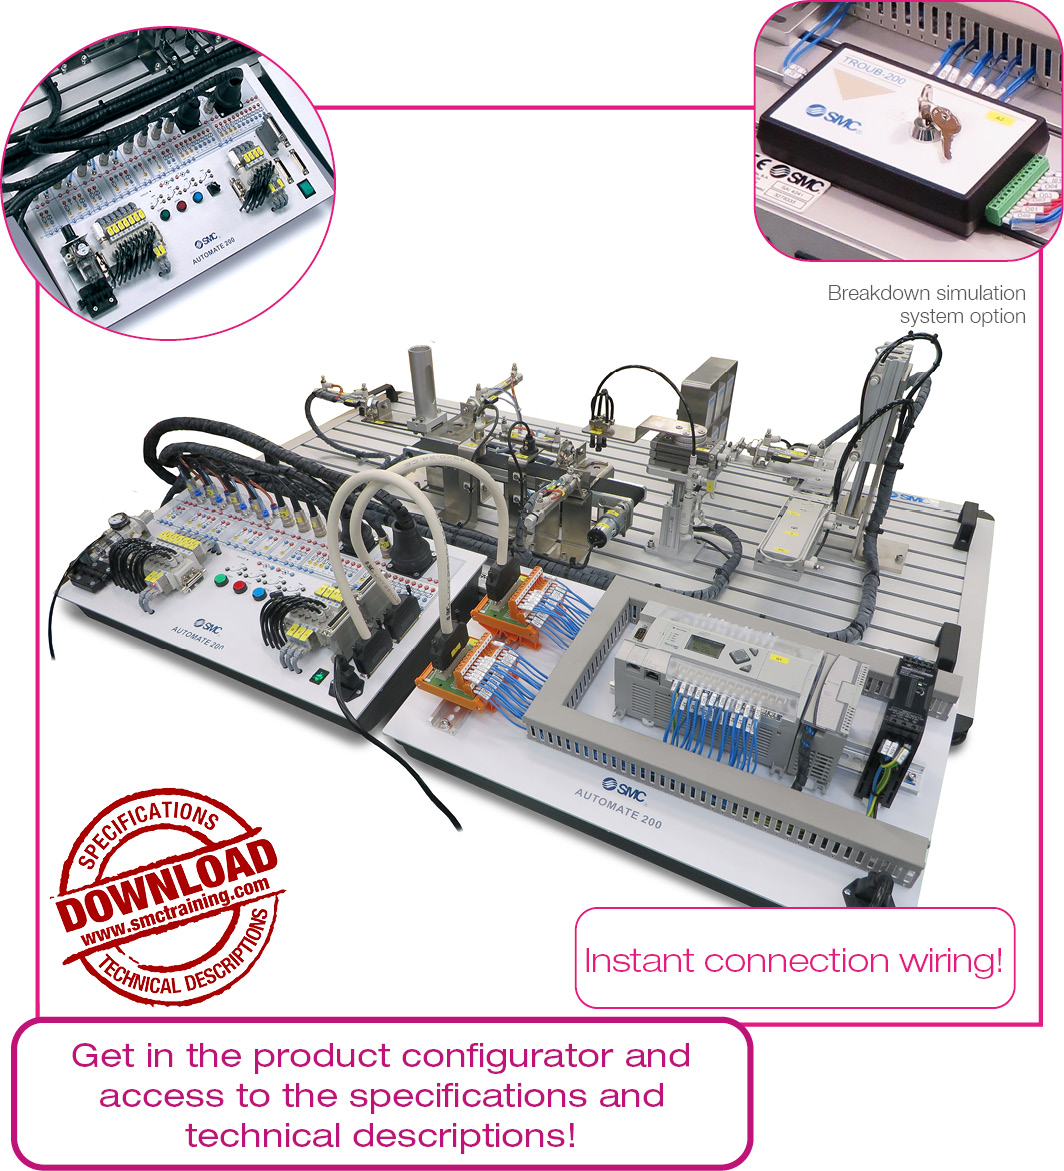 Automate 200a Instant Connection Wiring This Excellent Simulator Includes All Components And Electronic The Troubleshooting Simulation System Troub 200 Can Be Included Which Generates Up To 16 Different Breakdowns Diagnosed By User